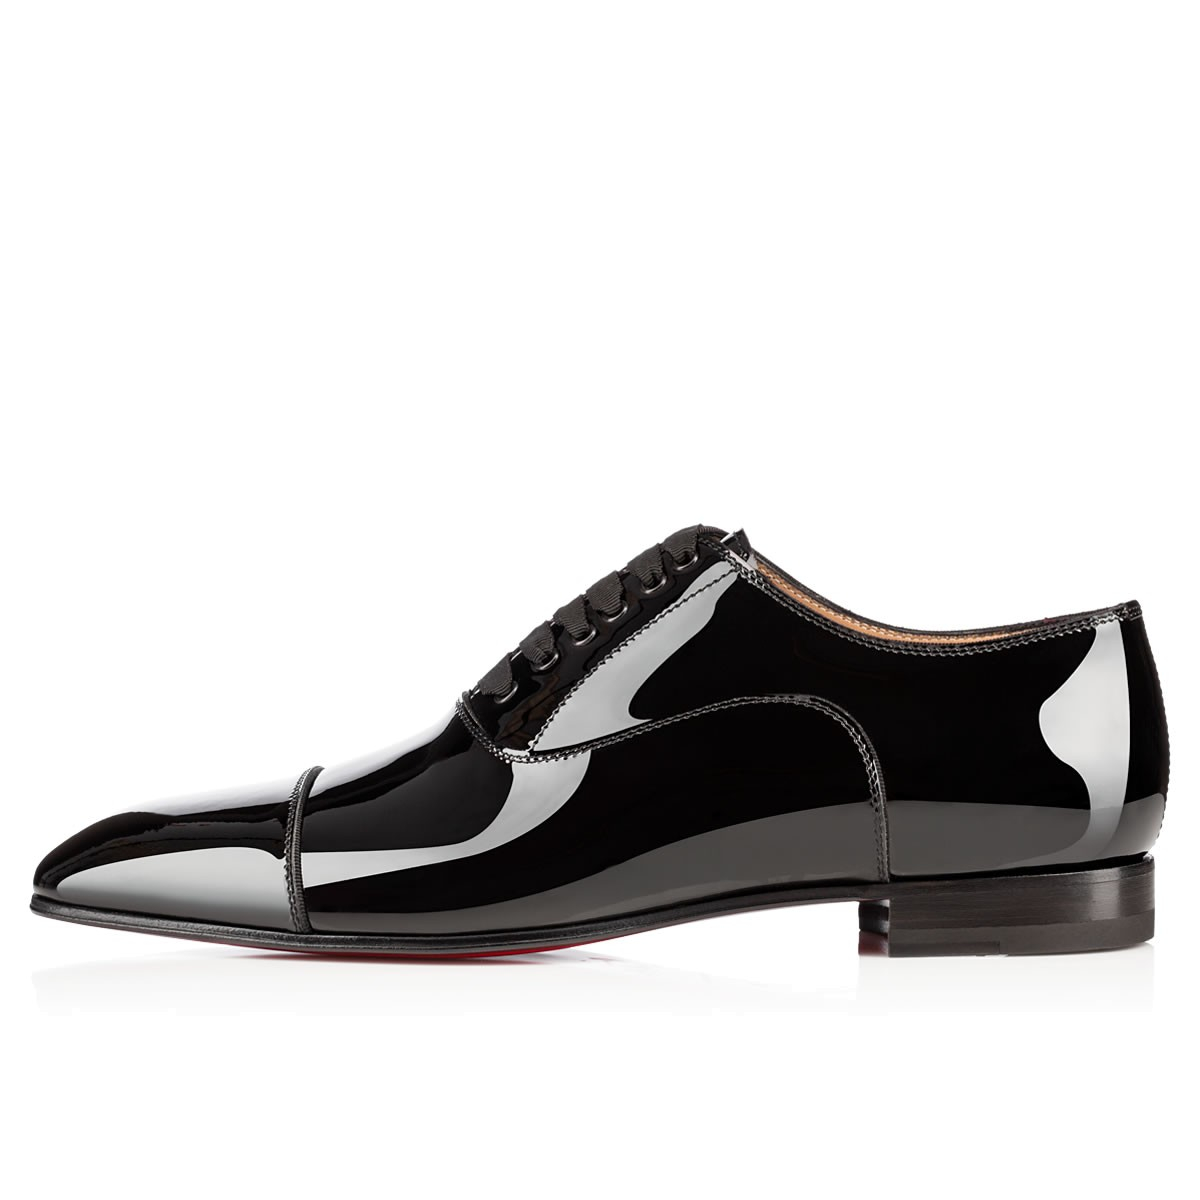 louis vuitton mens shoes cheap - 94+ Men's Christian Louboutin Lace-Ups - Browse & Shop | Lyst